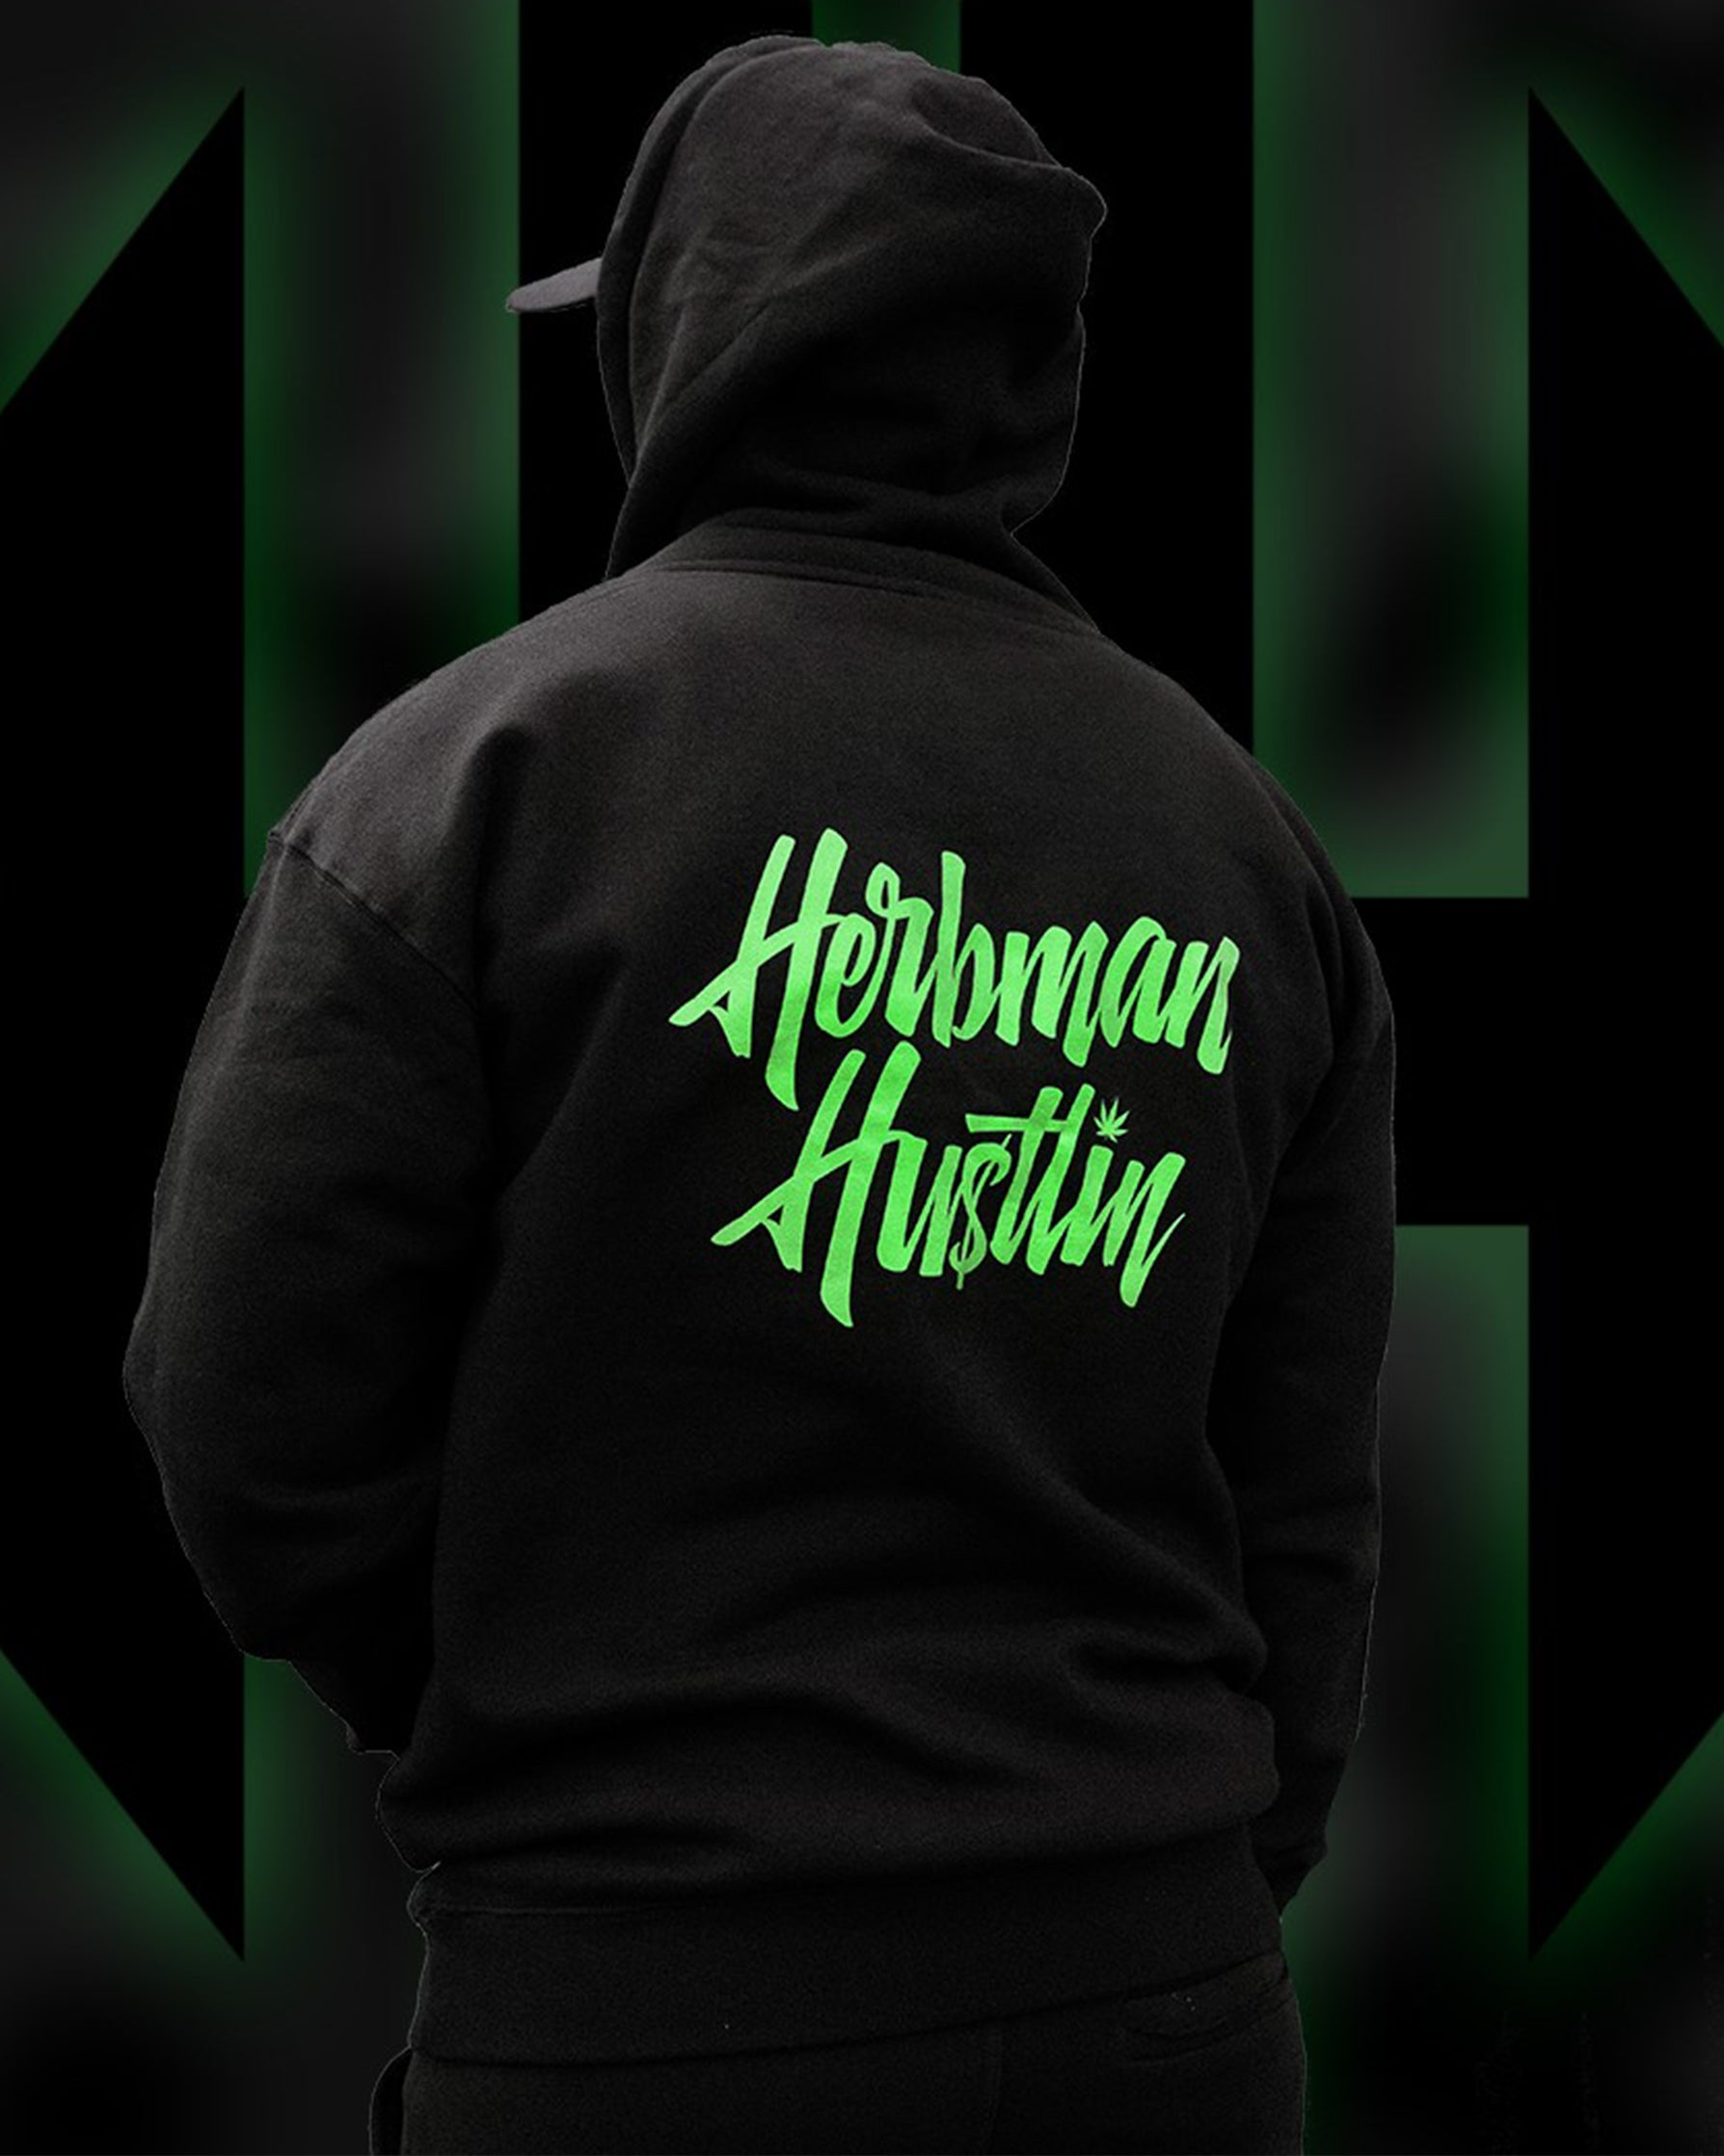 Herbman Hustlin Script Hoodie - Black/Glow in the Dark - LIMITED EDITION